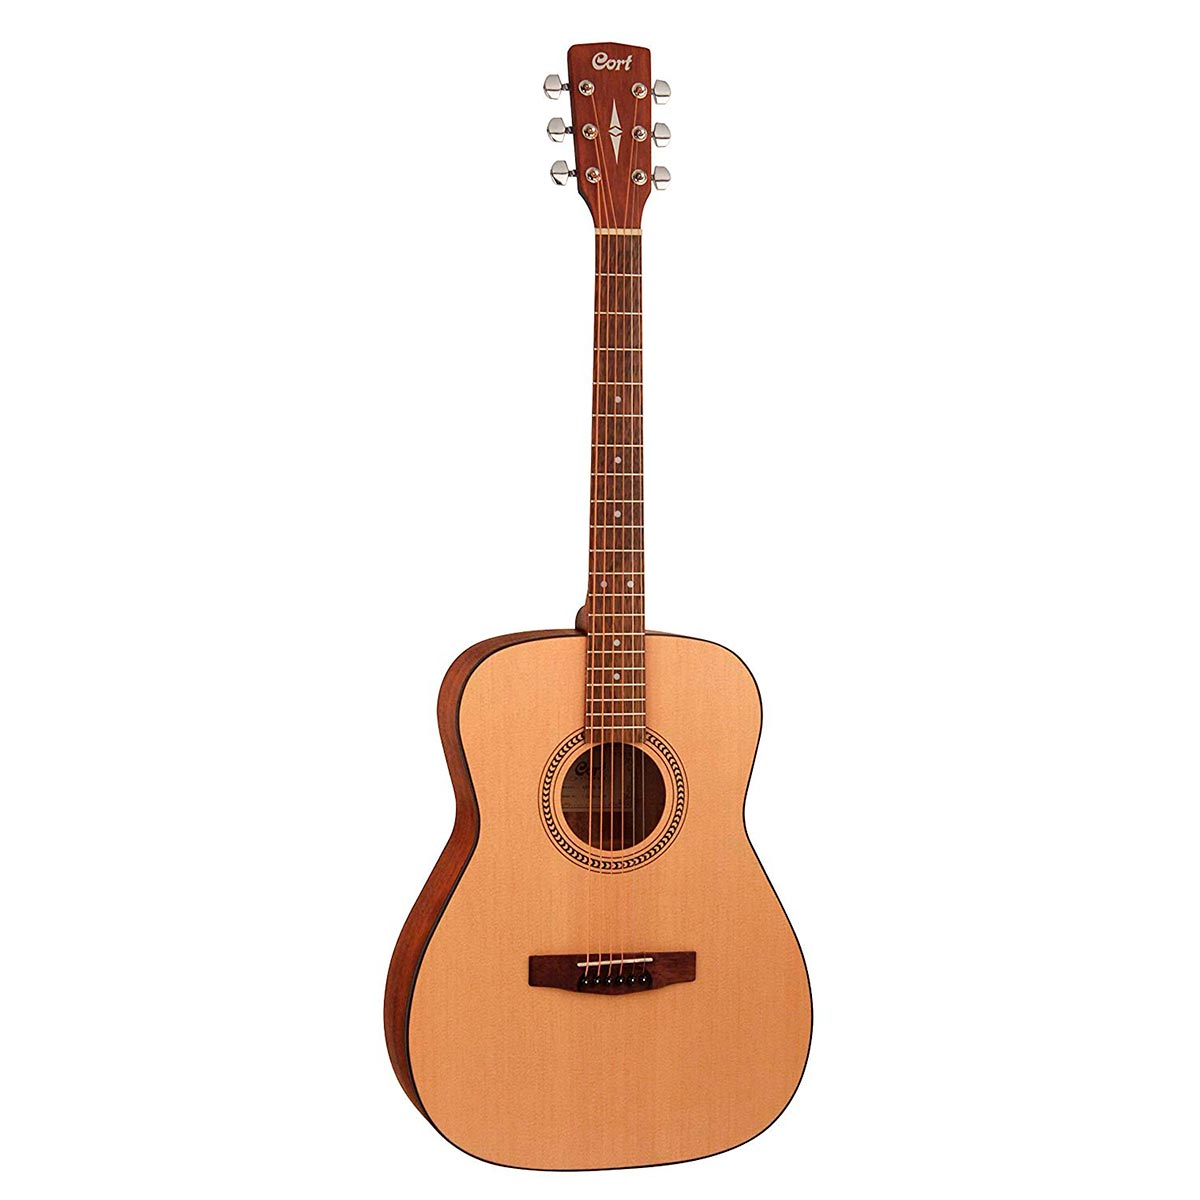 Cort Earth-50 OP - Guitarra acústica dreadnought